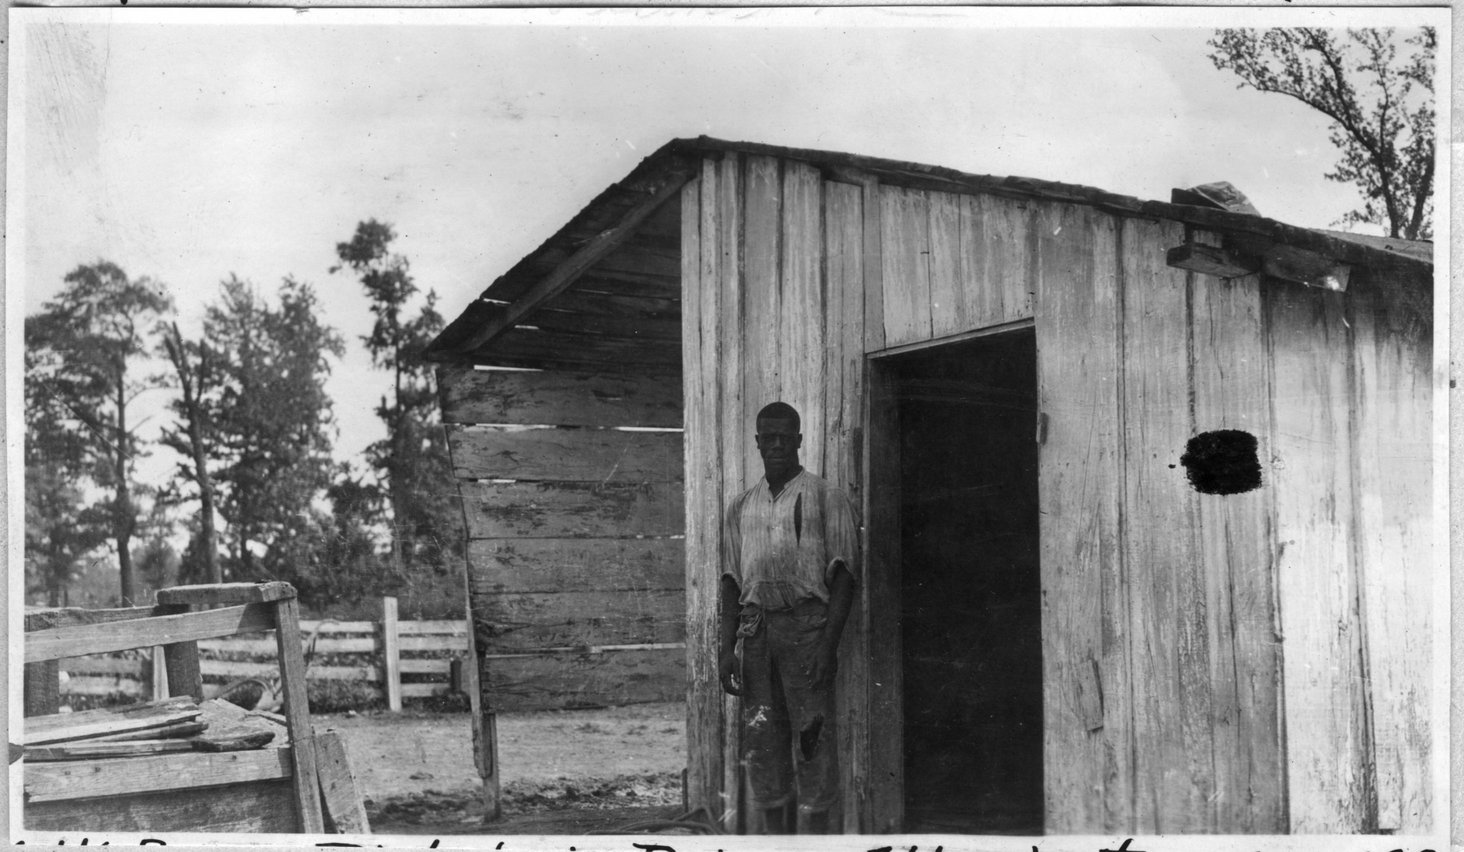 016~W. L. Pinkston Milk House Aug 1920.jpg